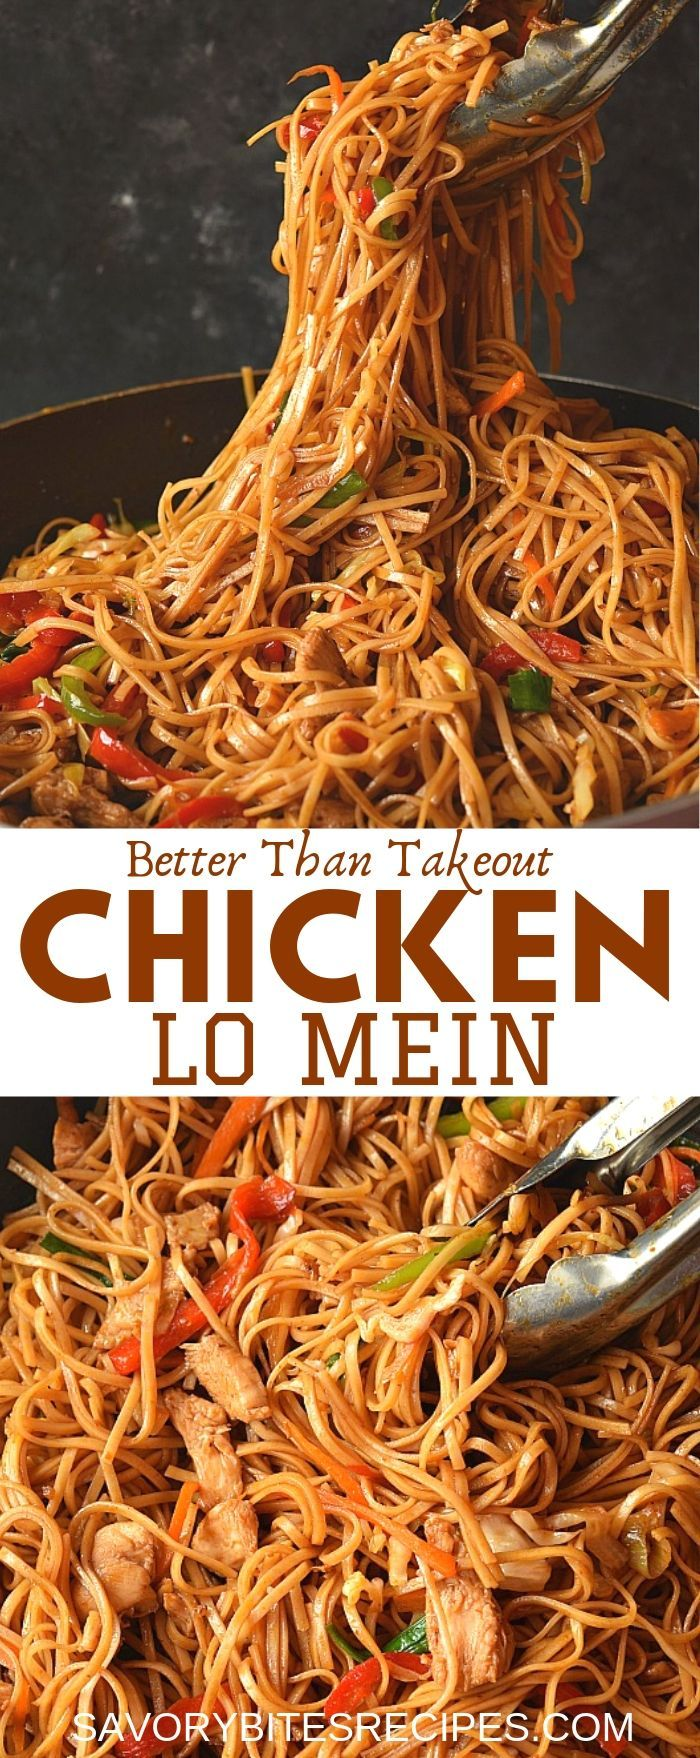 Better than takeout Chicken Lo Mein recipe,which you are going to love as its easy,delicious and totally under 30 mins with veggies,lo mein sauce,chicken and egg noodles, makes the this lo mein recipe better than any Chinese takeout dish!  #savorybitesrecipes #chickenlomein #easyrecipe #dinnerrecipes #noodles #chinesefood #betterthantakeout #restaurantstyle #easy #chinese #chicken #lomein